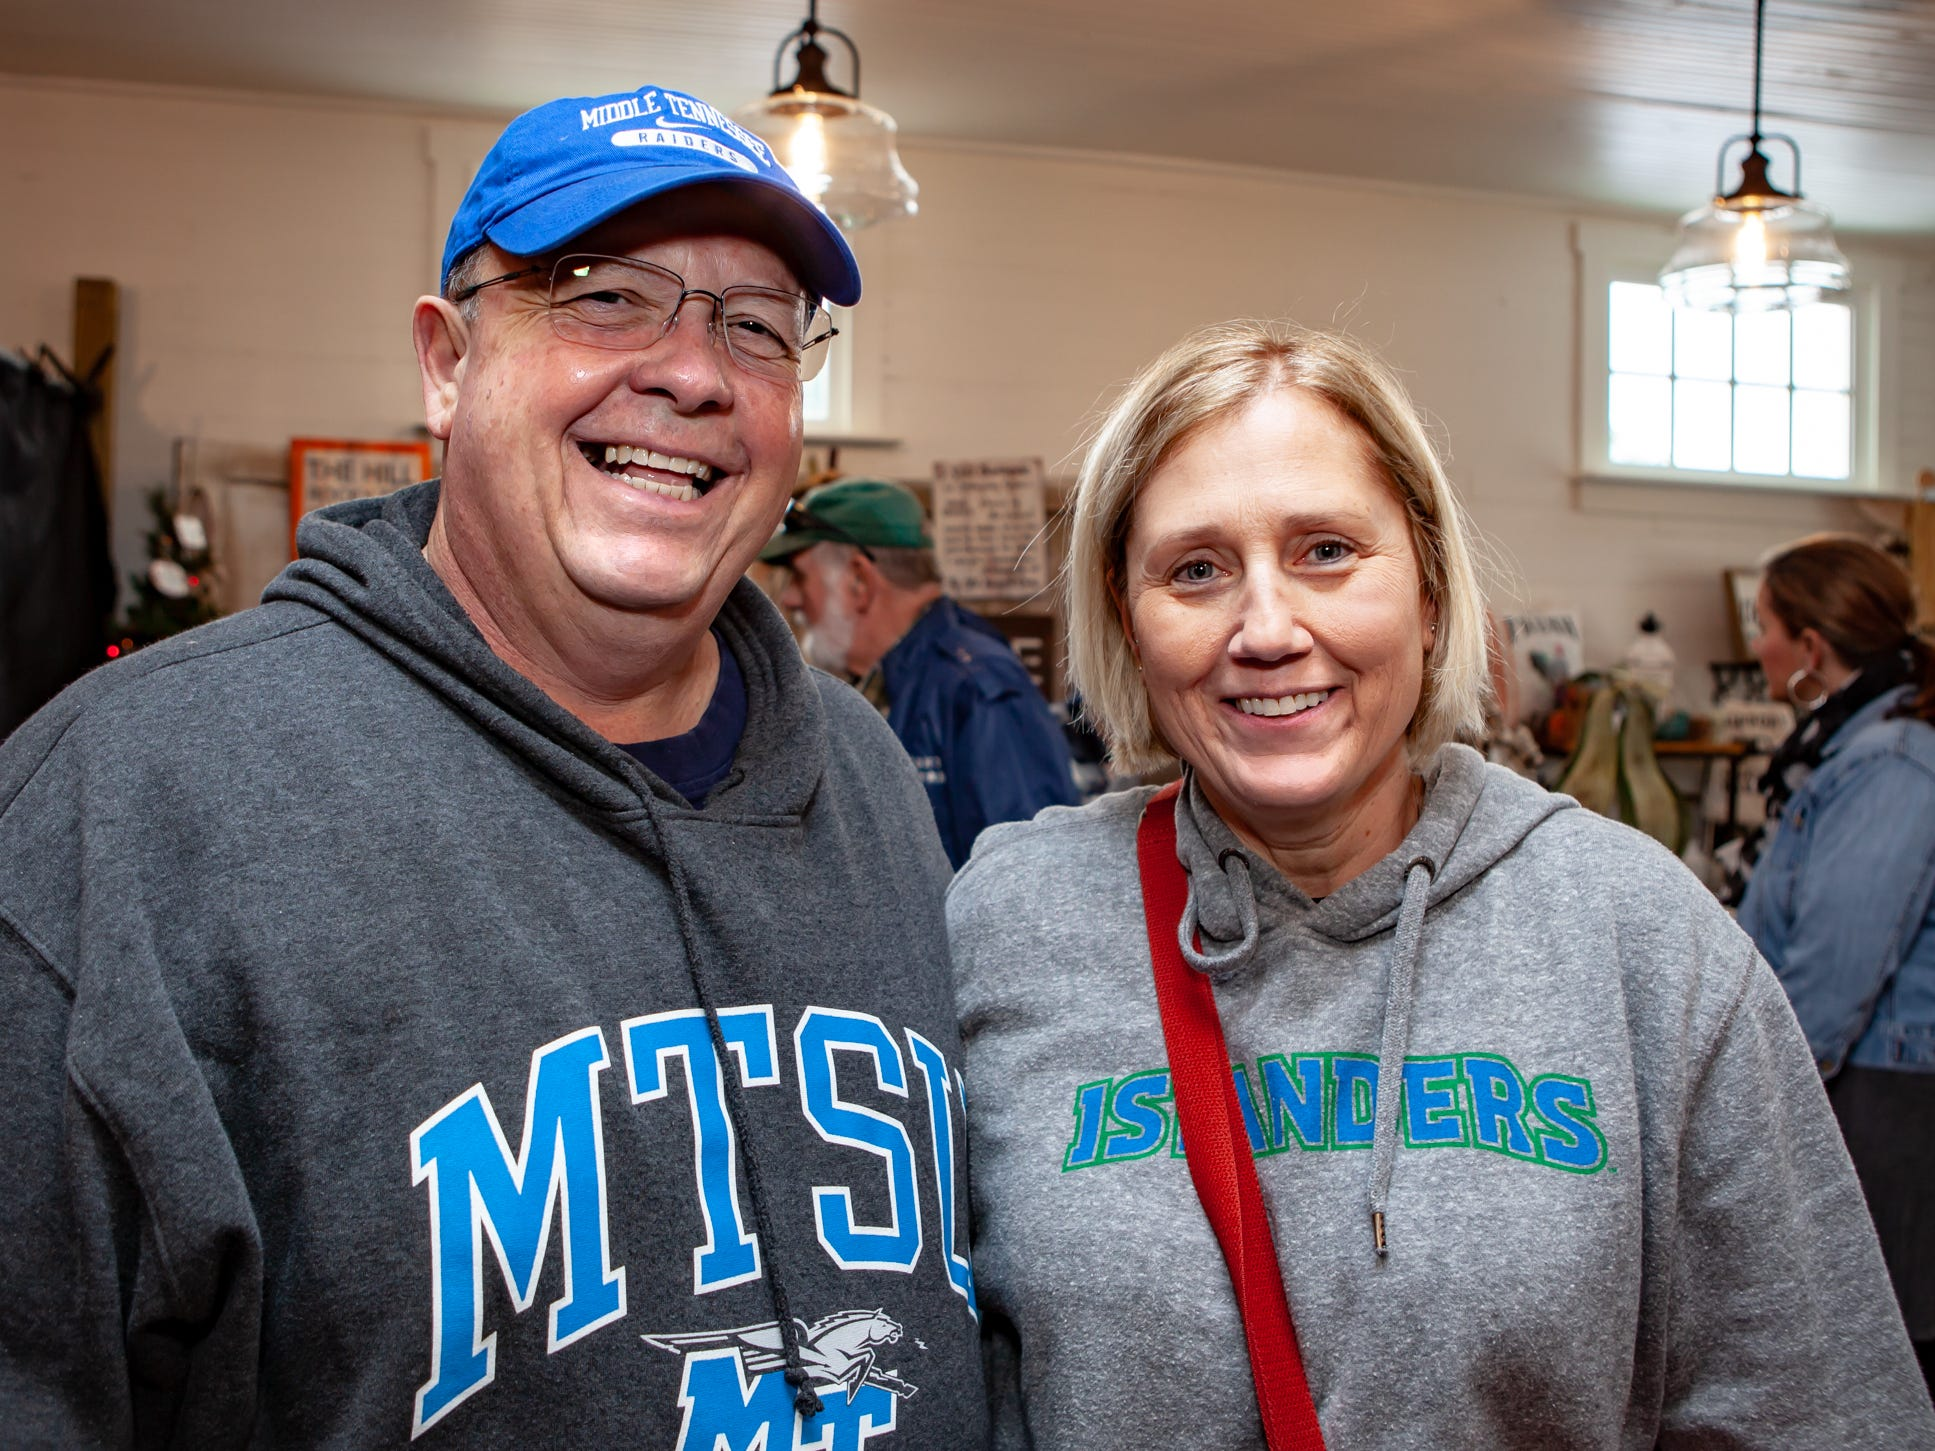 Dr. Bud and Anita Fischer at The Gathering at Milton's fall market and craft fair on Saturday, Oct. 13, 2018.